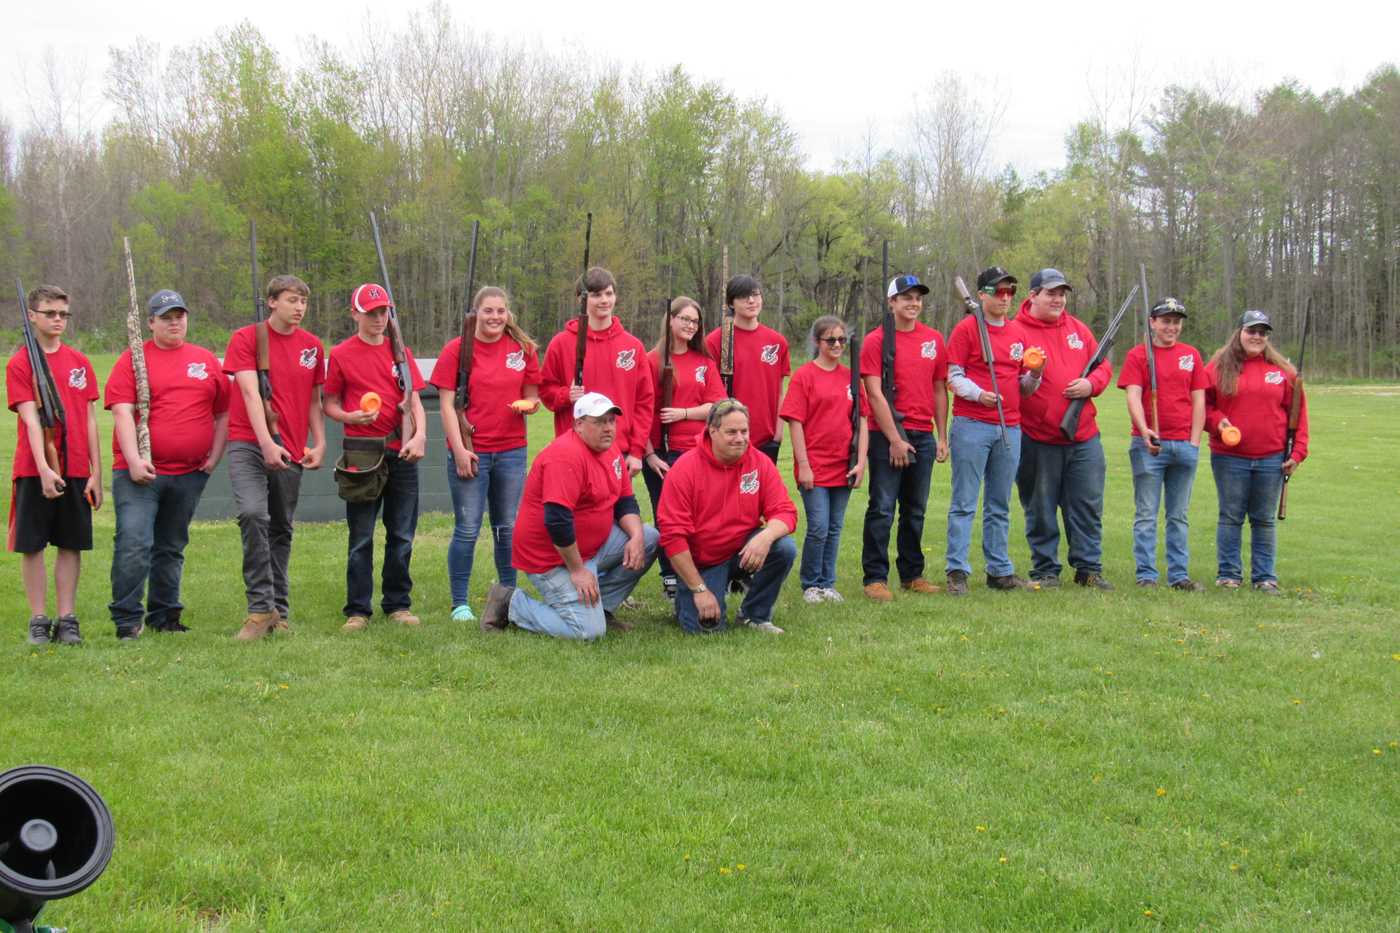 Members of the Holley Central School Holley Hawks Trap League team pose with their coaches May 11 at the Holley Rod & Gun Club in Clarendon. K. Gabalski photo